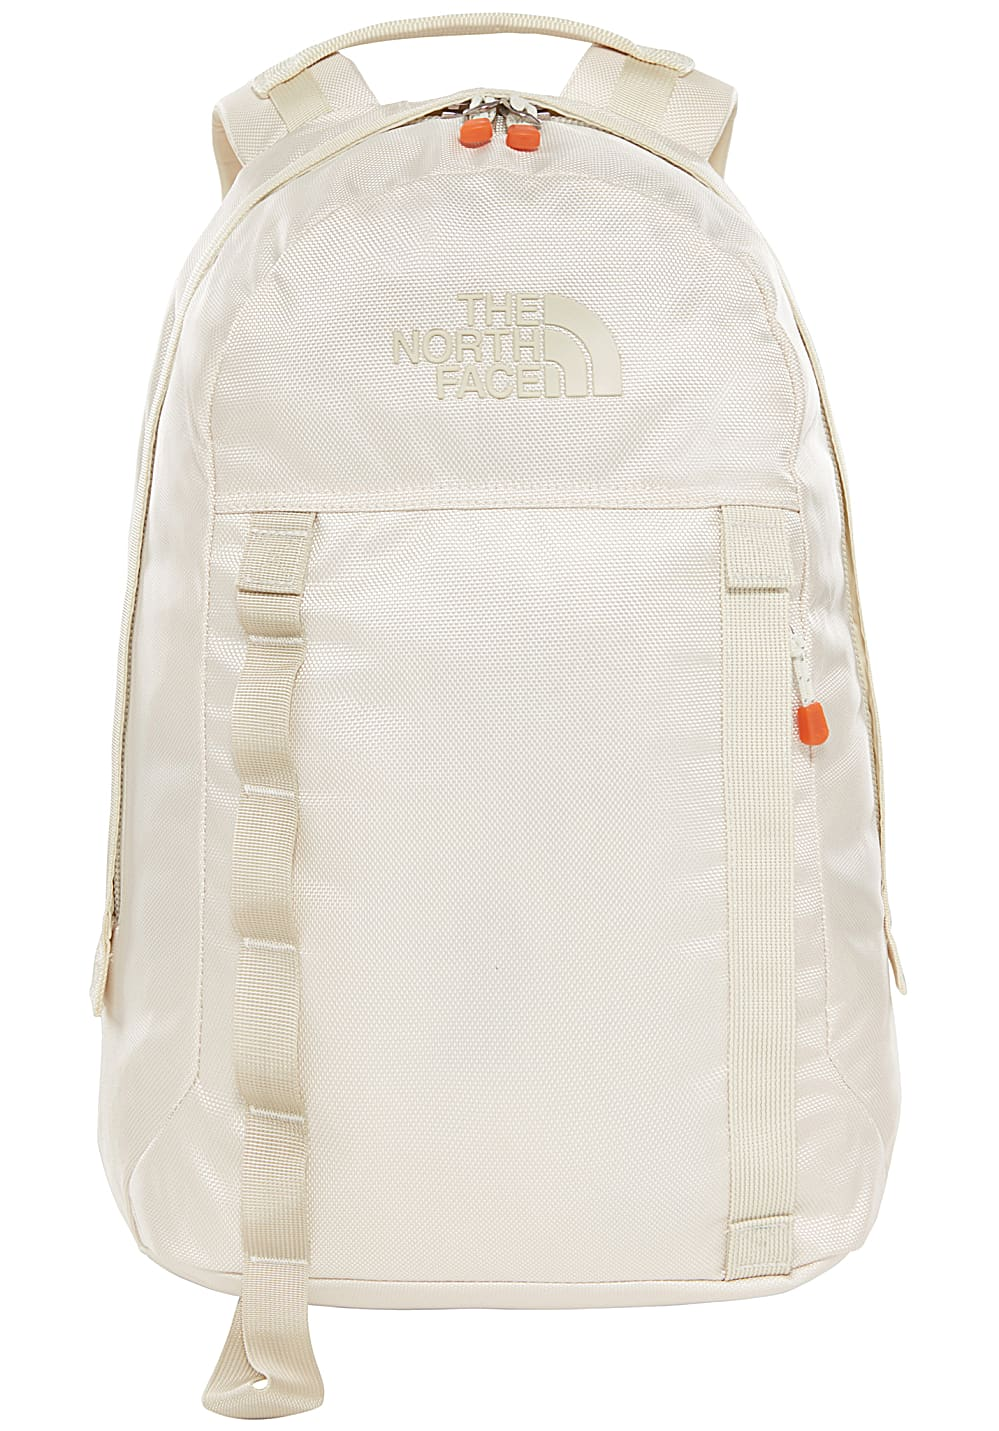 5c2012b4a THE NORTH FACE Lineage Pack 20L - Backpack - White - Planet Sports